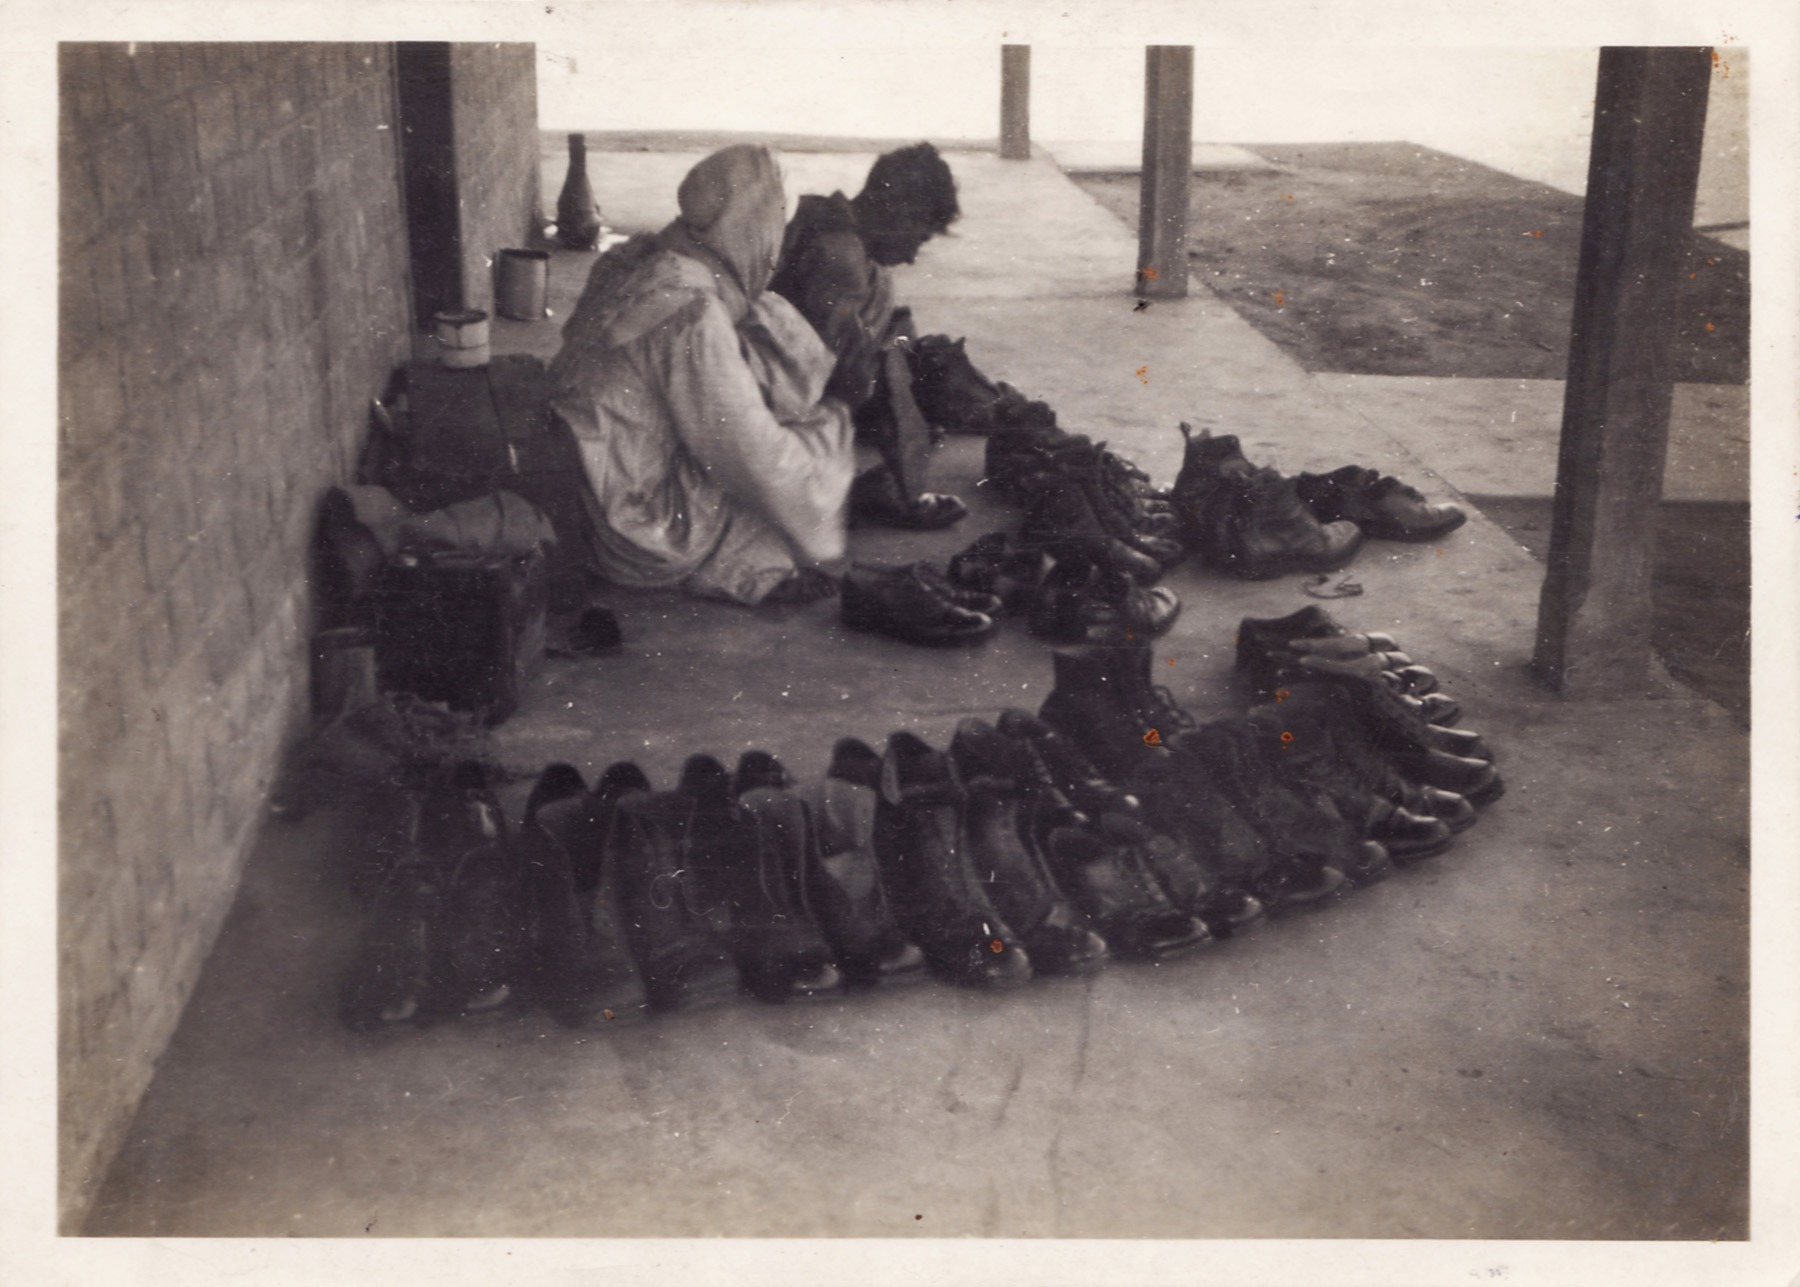 Locals cleaning boots at RAF Abu Sueir